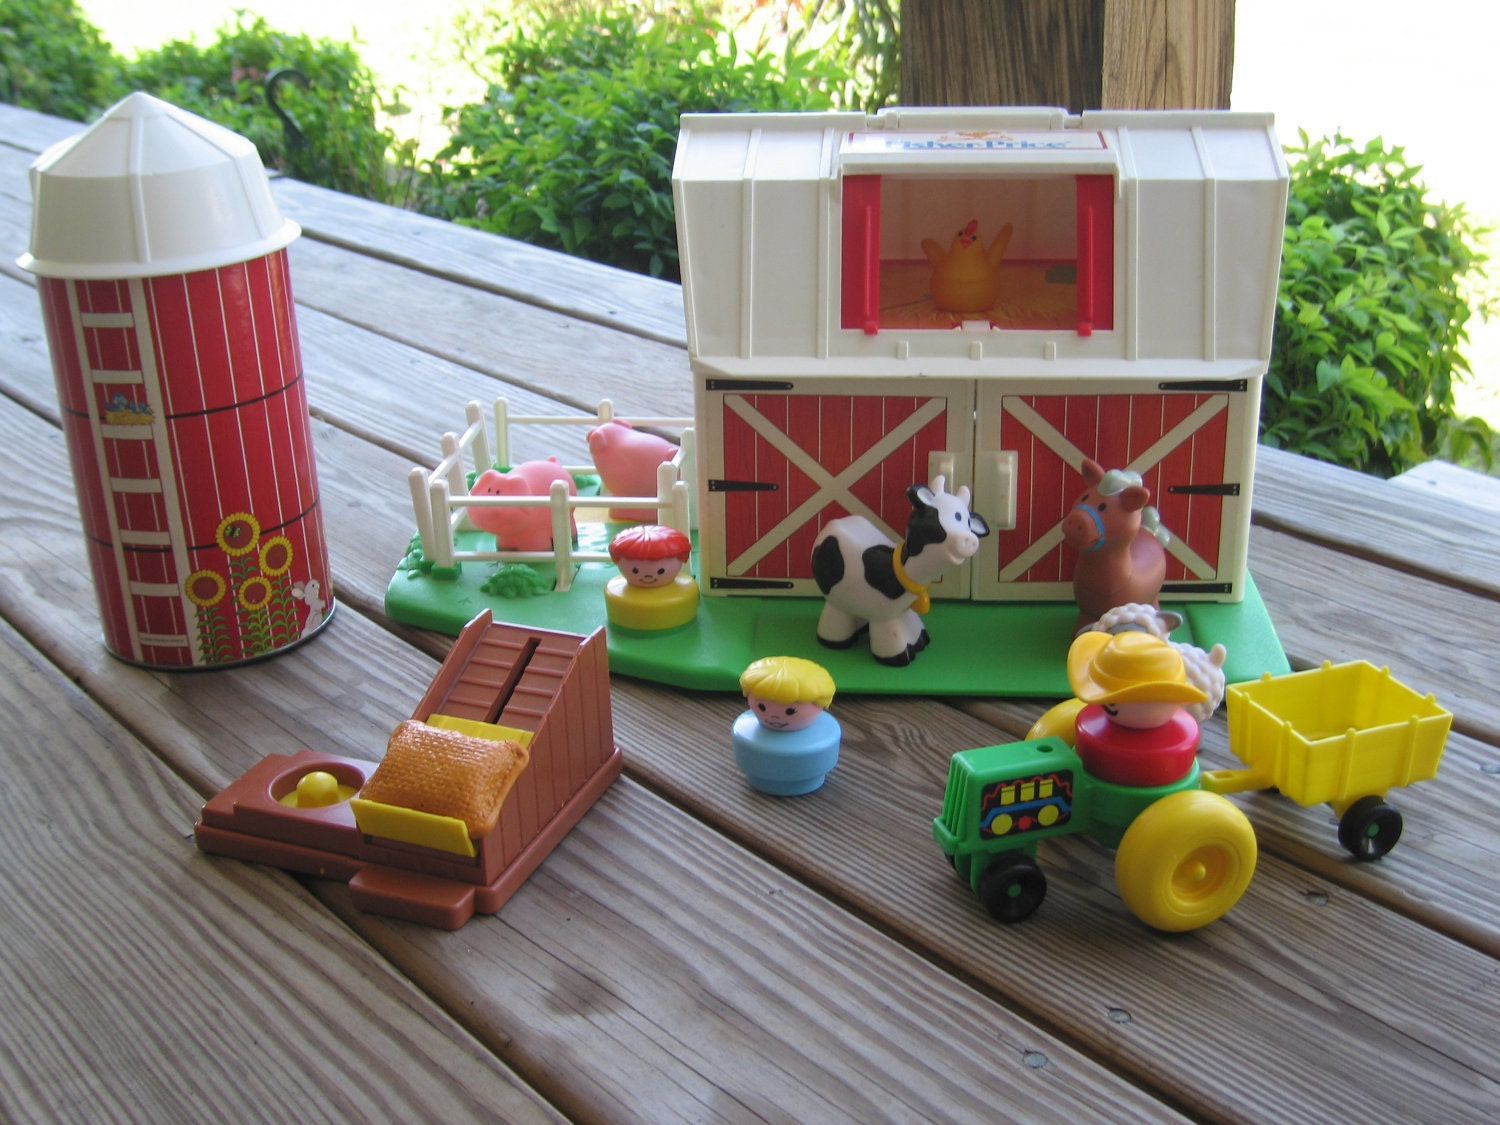 Vintage Moo Farm by Fisher Price Little People Toy with Silo